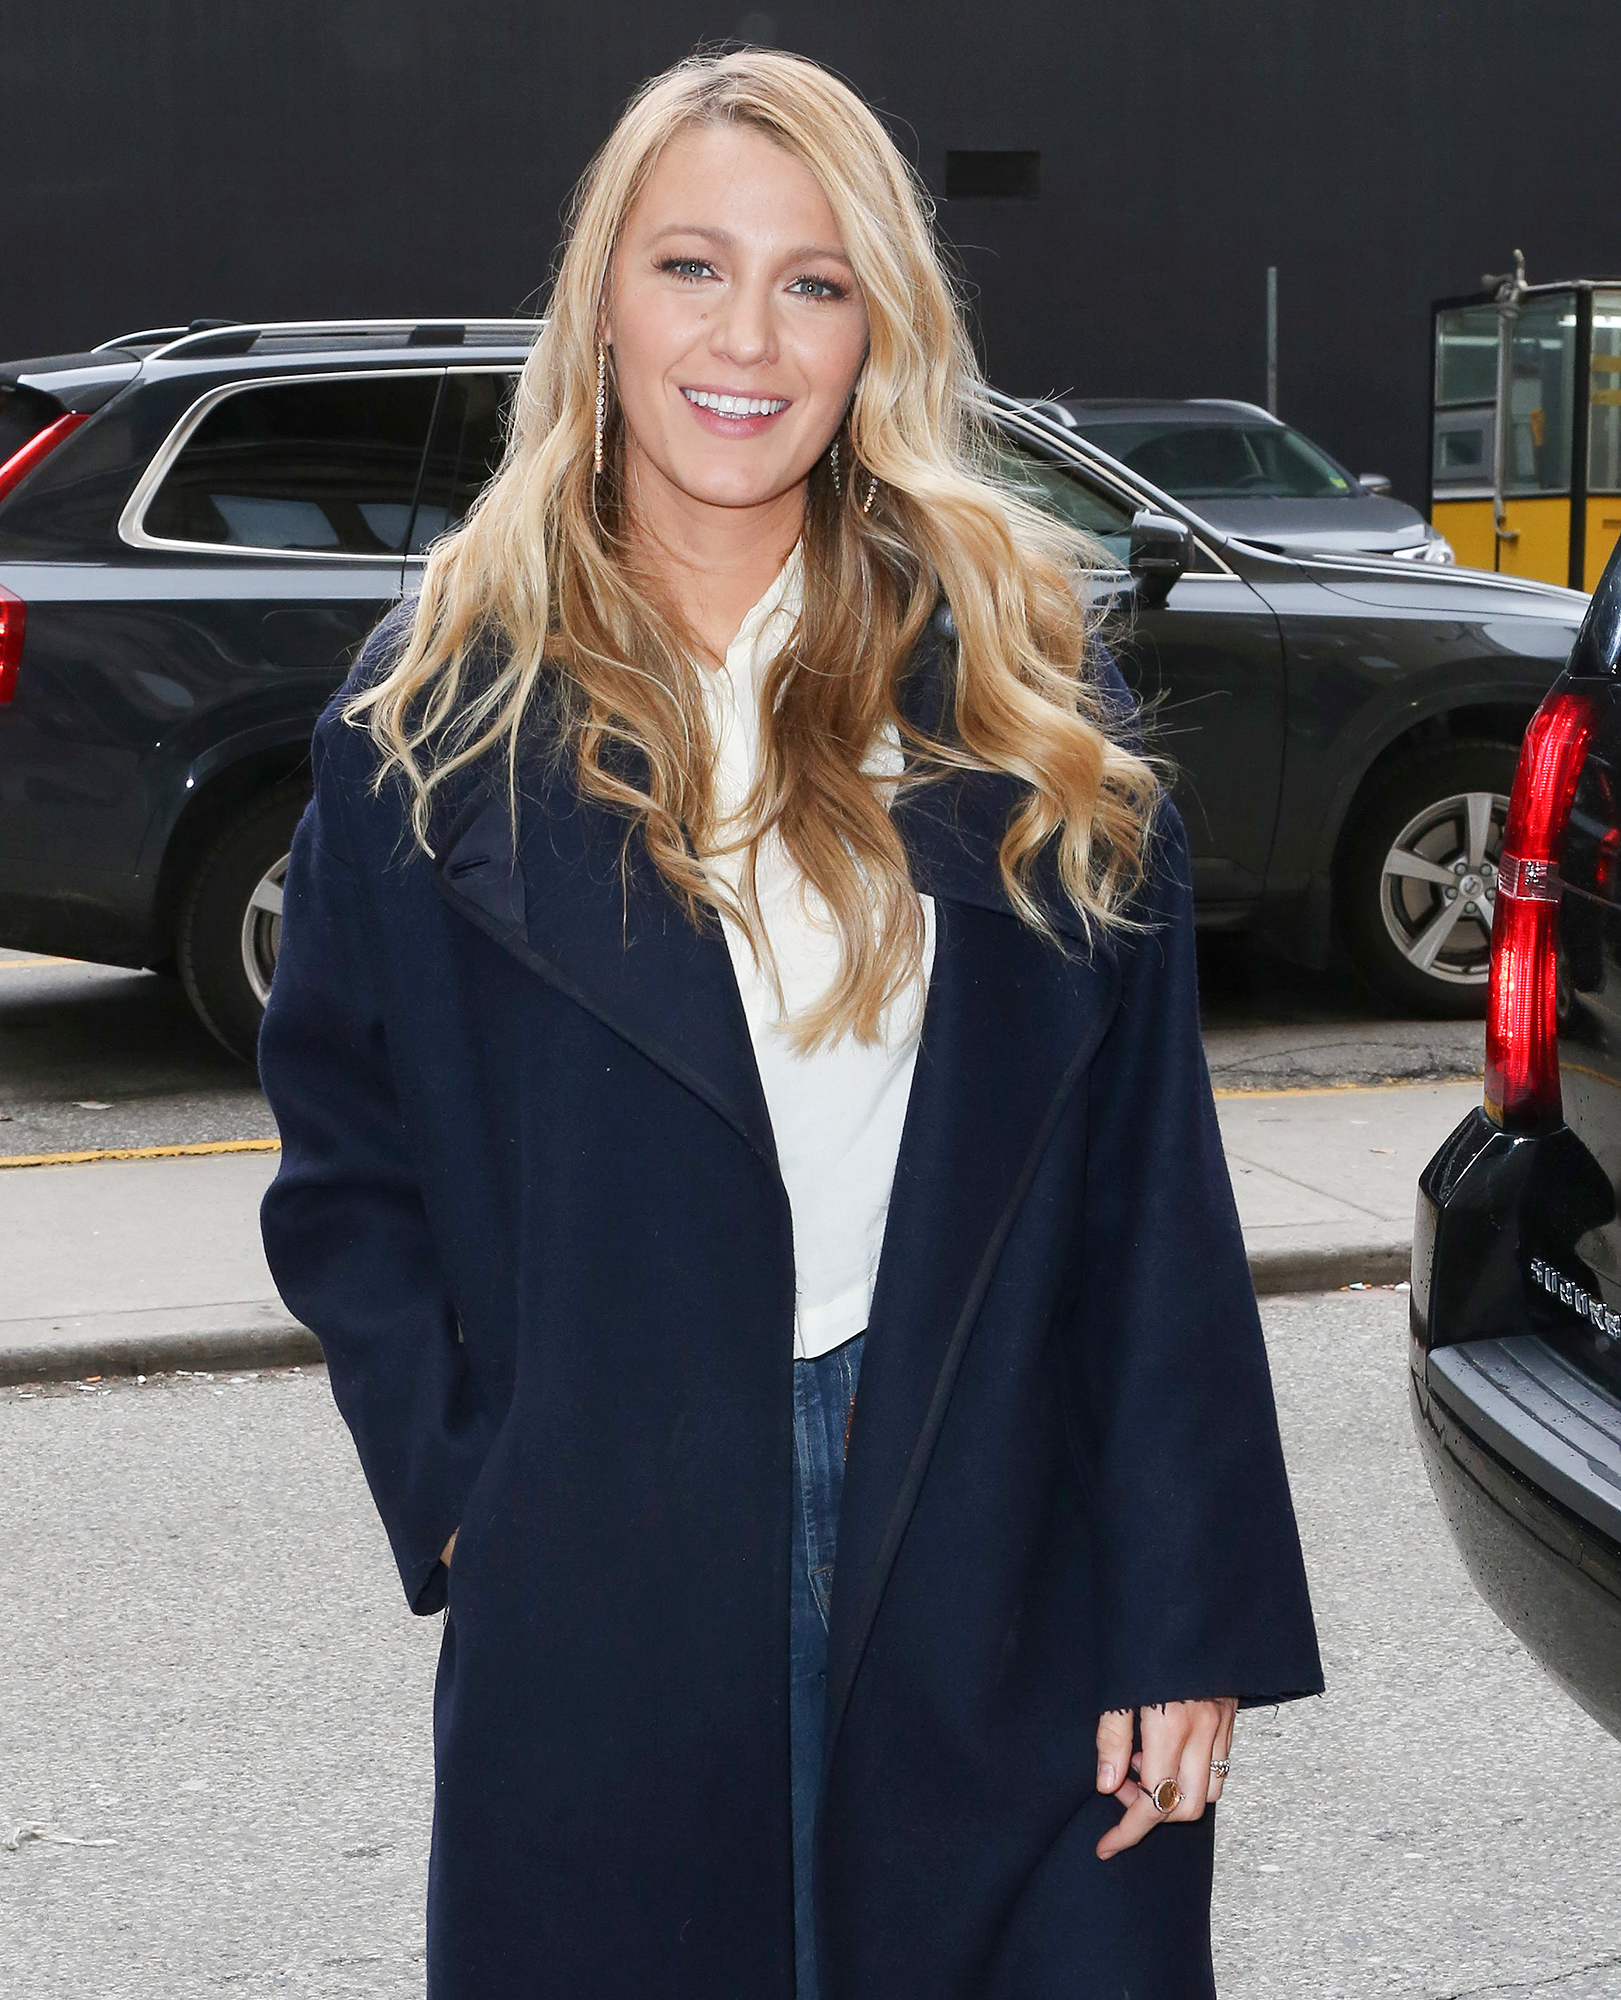 EXCLUSIVE: Blake Lively arriving to the L'Oreal Paris Women of Worth Gala in Toronto